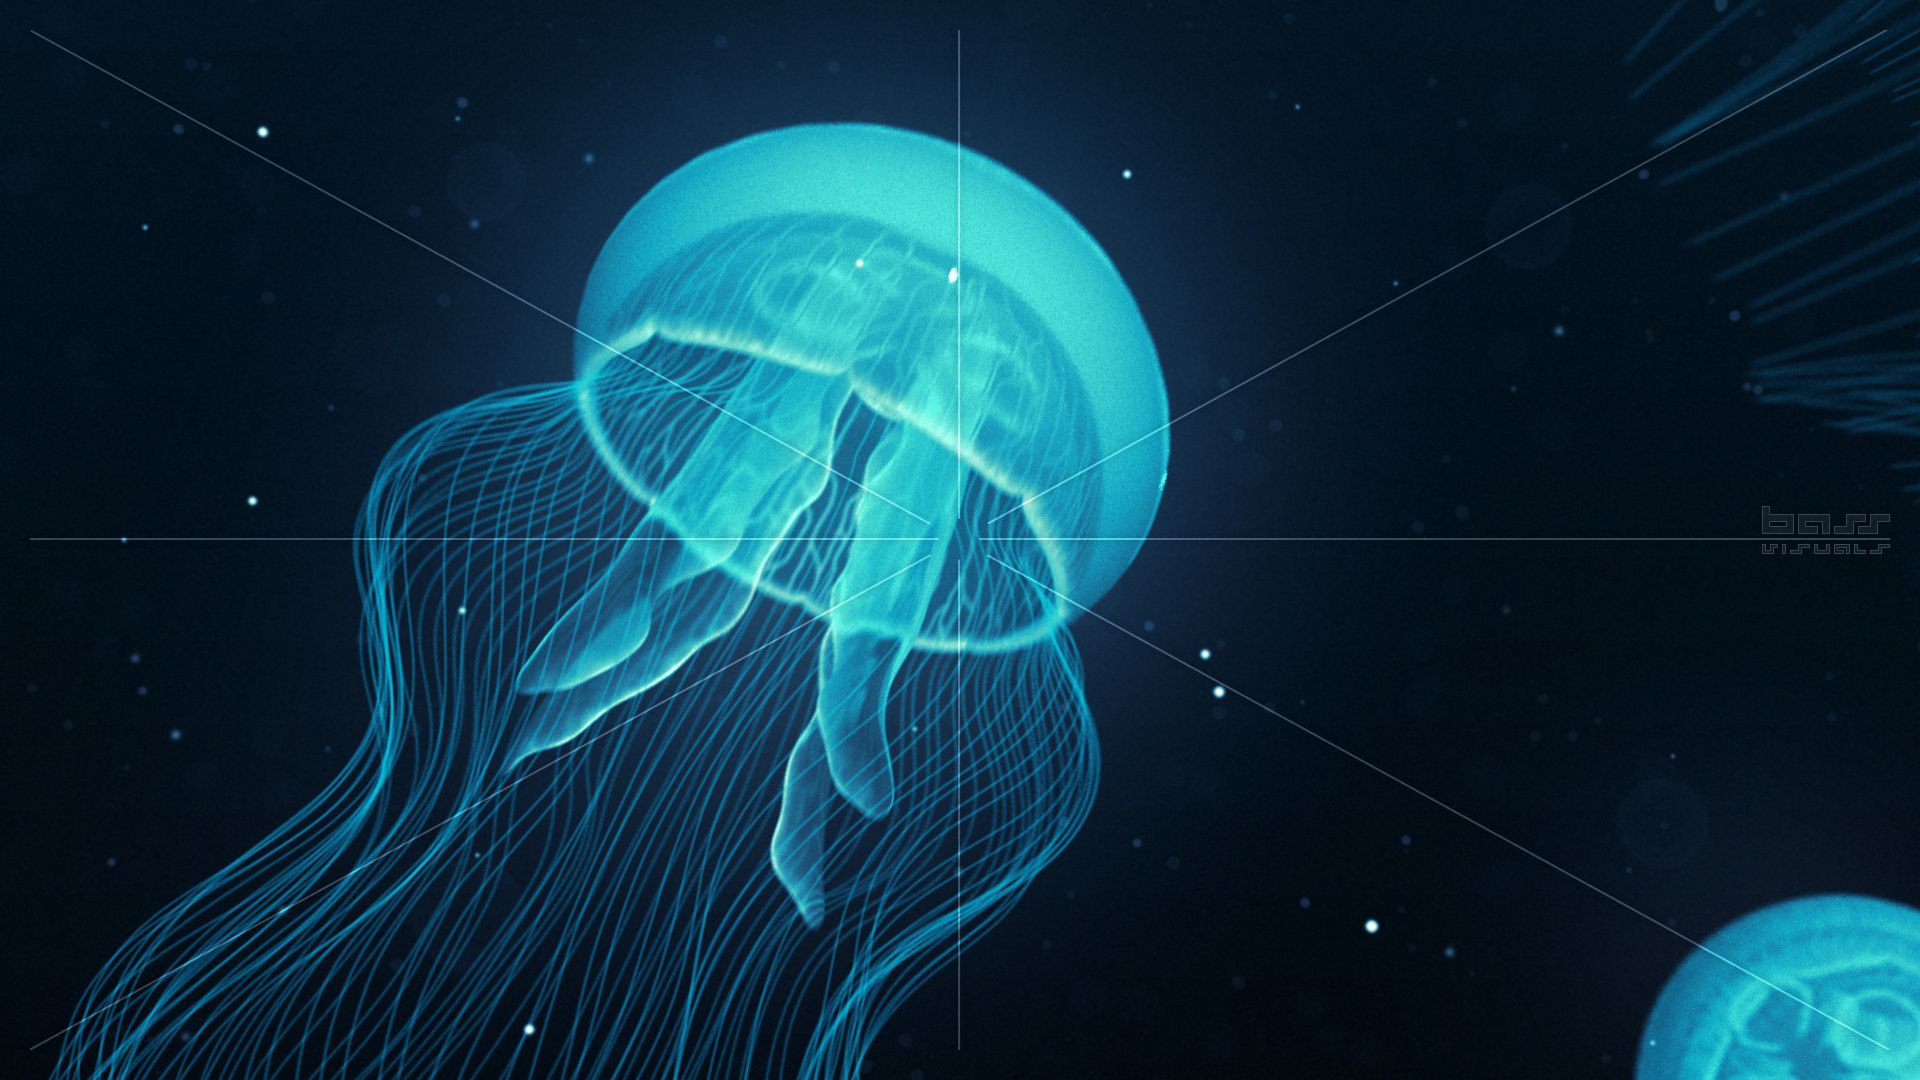 A loop of blue luminescent jellyfish gracefully swimming by ... for Bioluminescent Jellyfish Gif  585eri